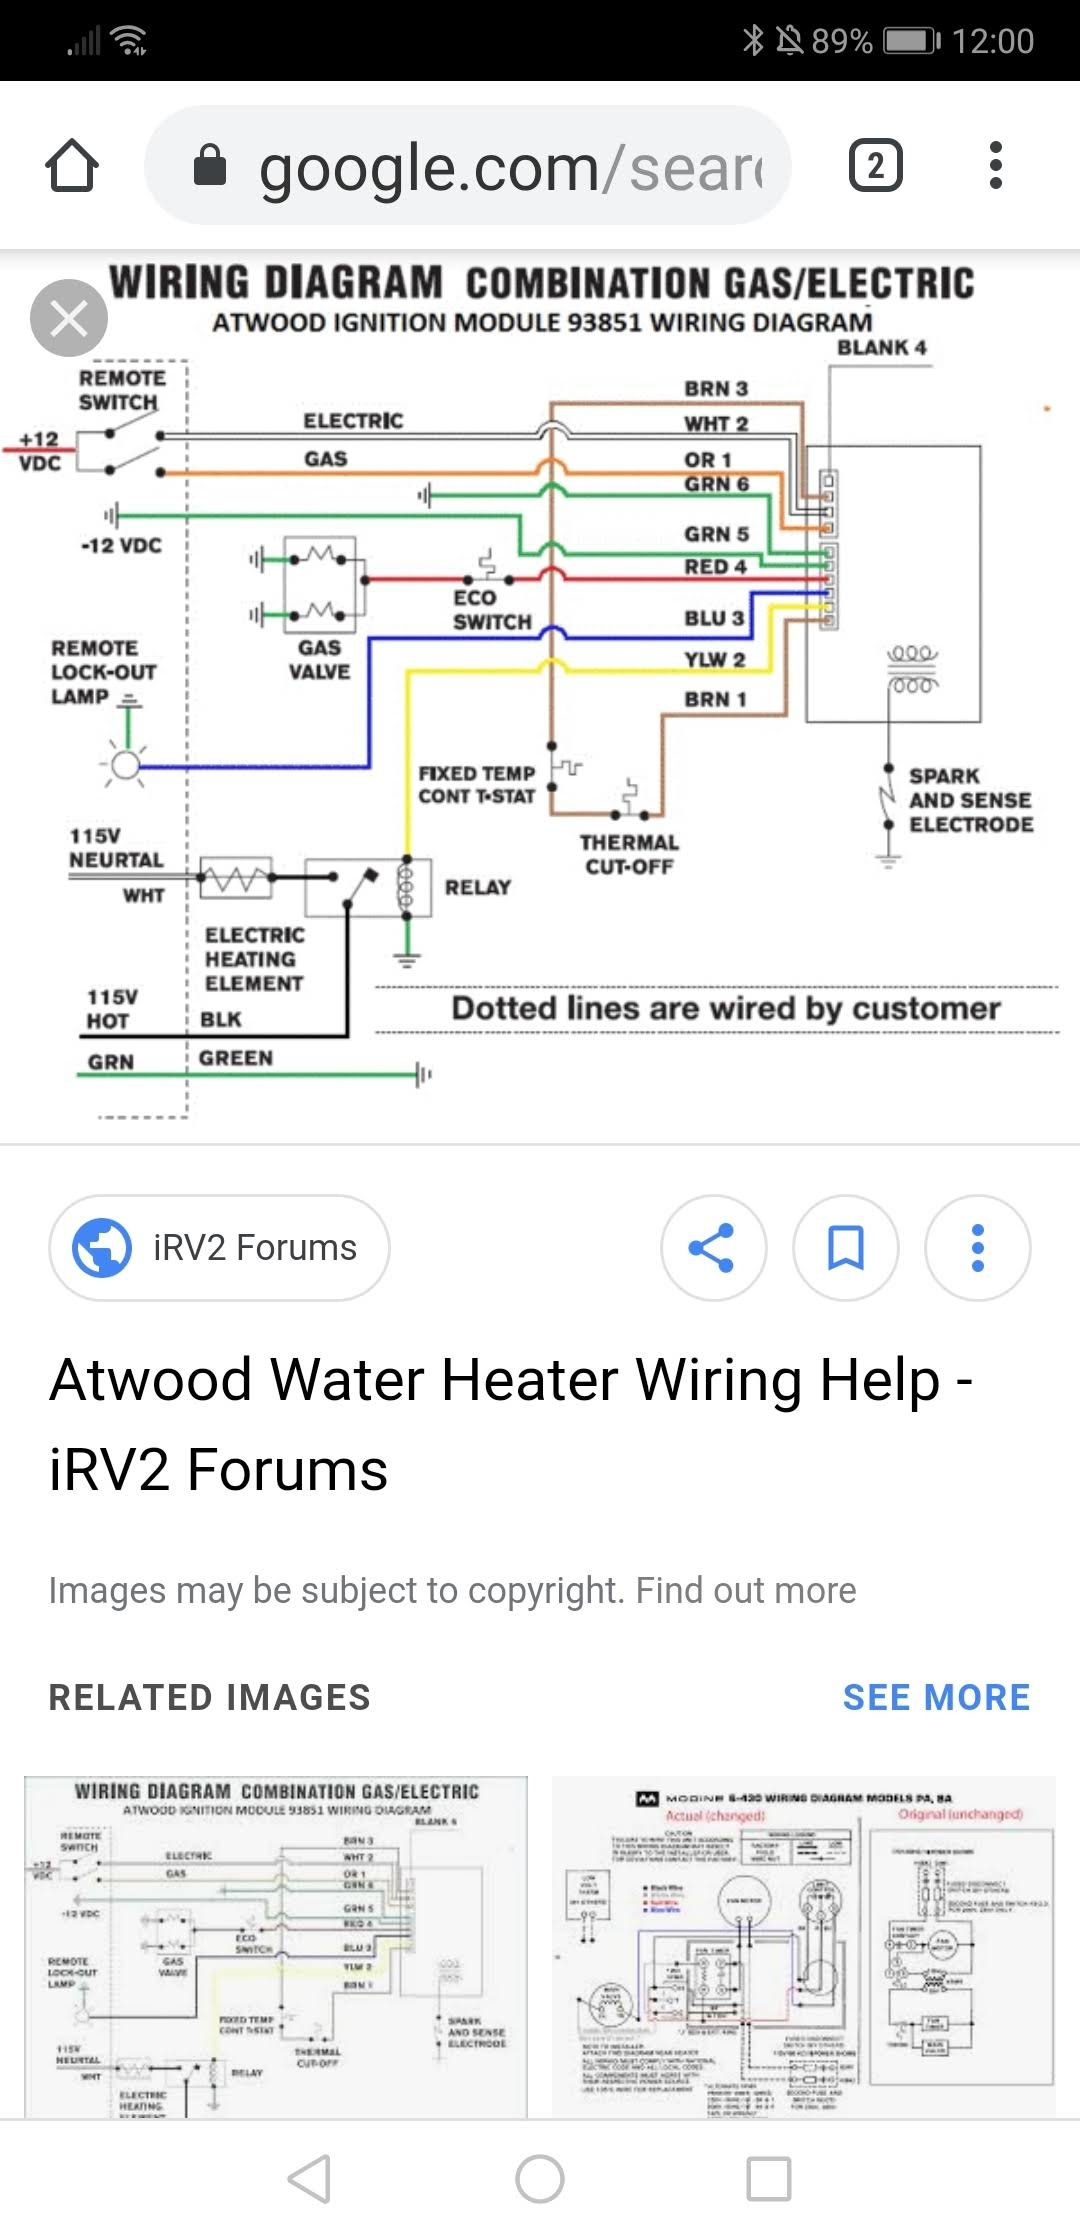 Atwood Hot Water Heater Wiring Diagram from content.invisioncic.com